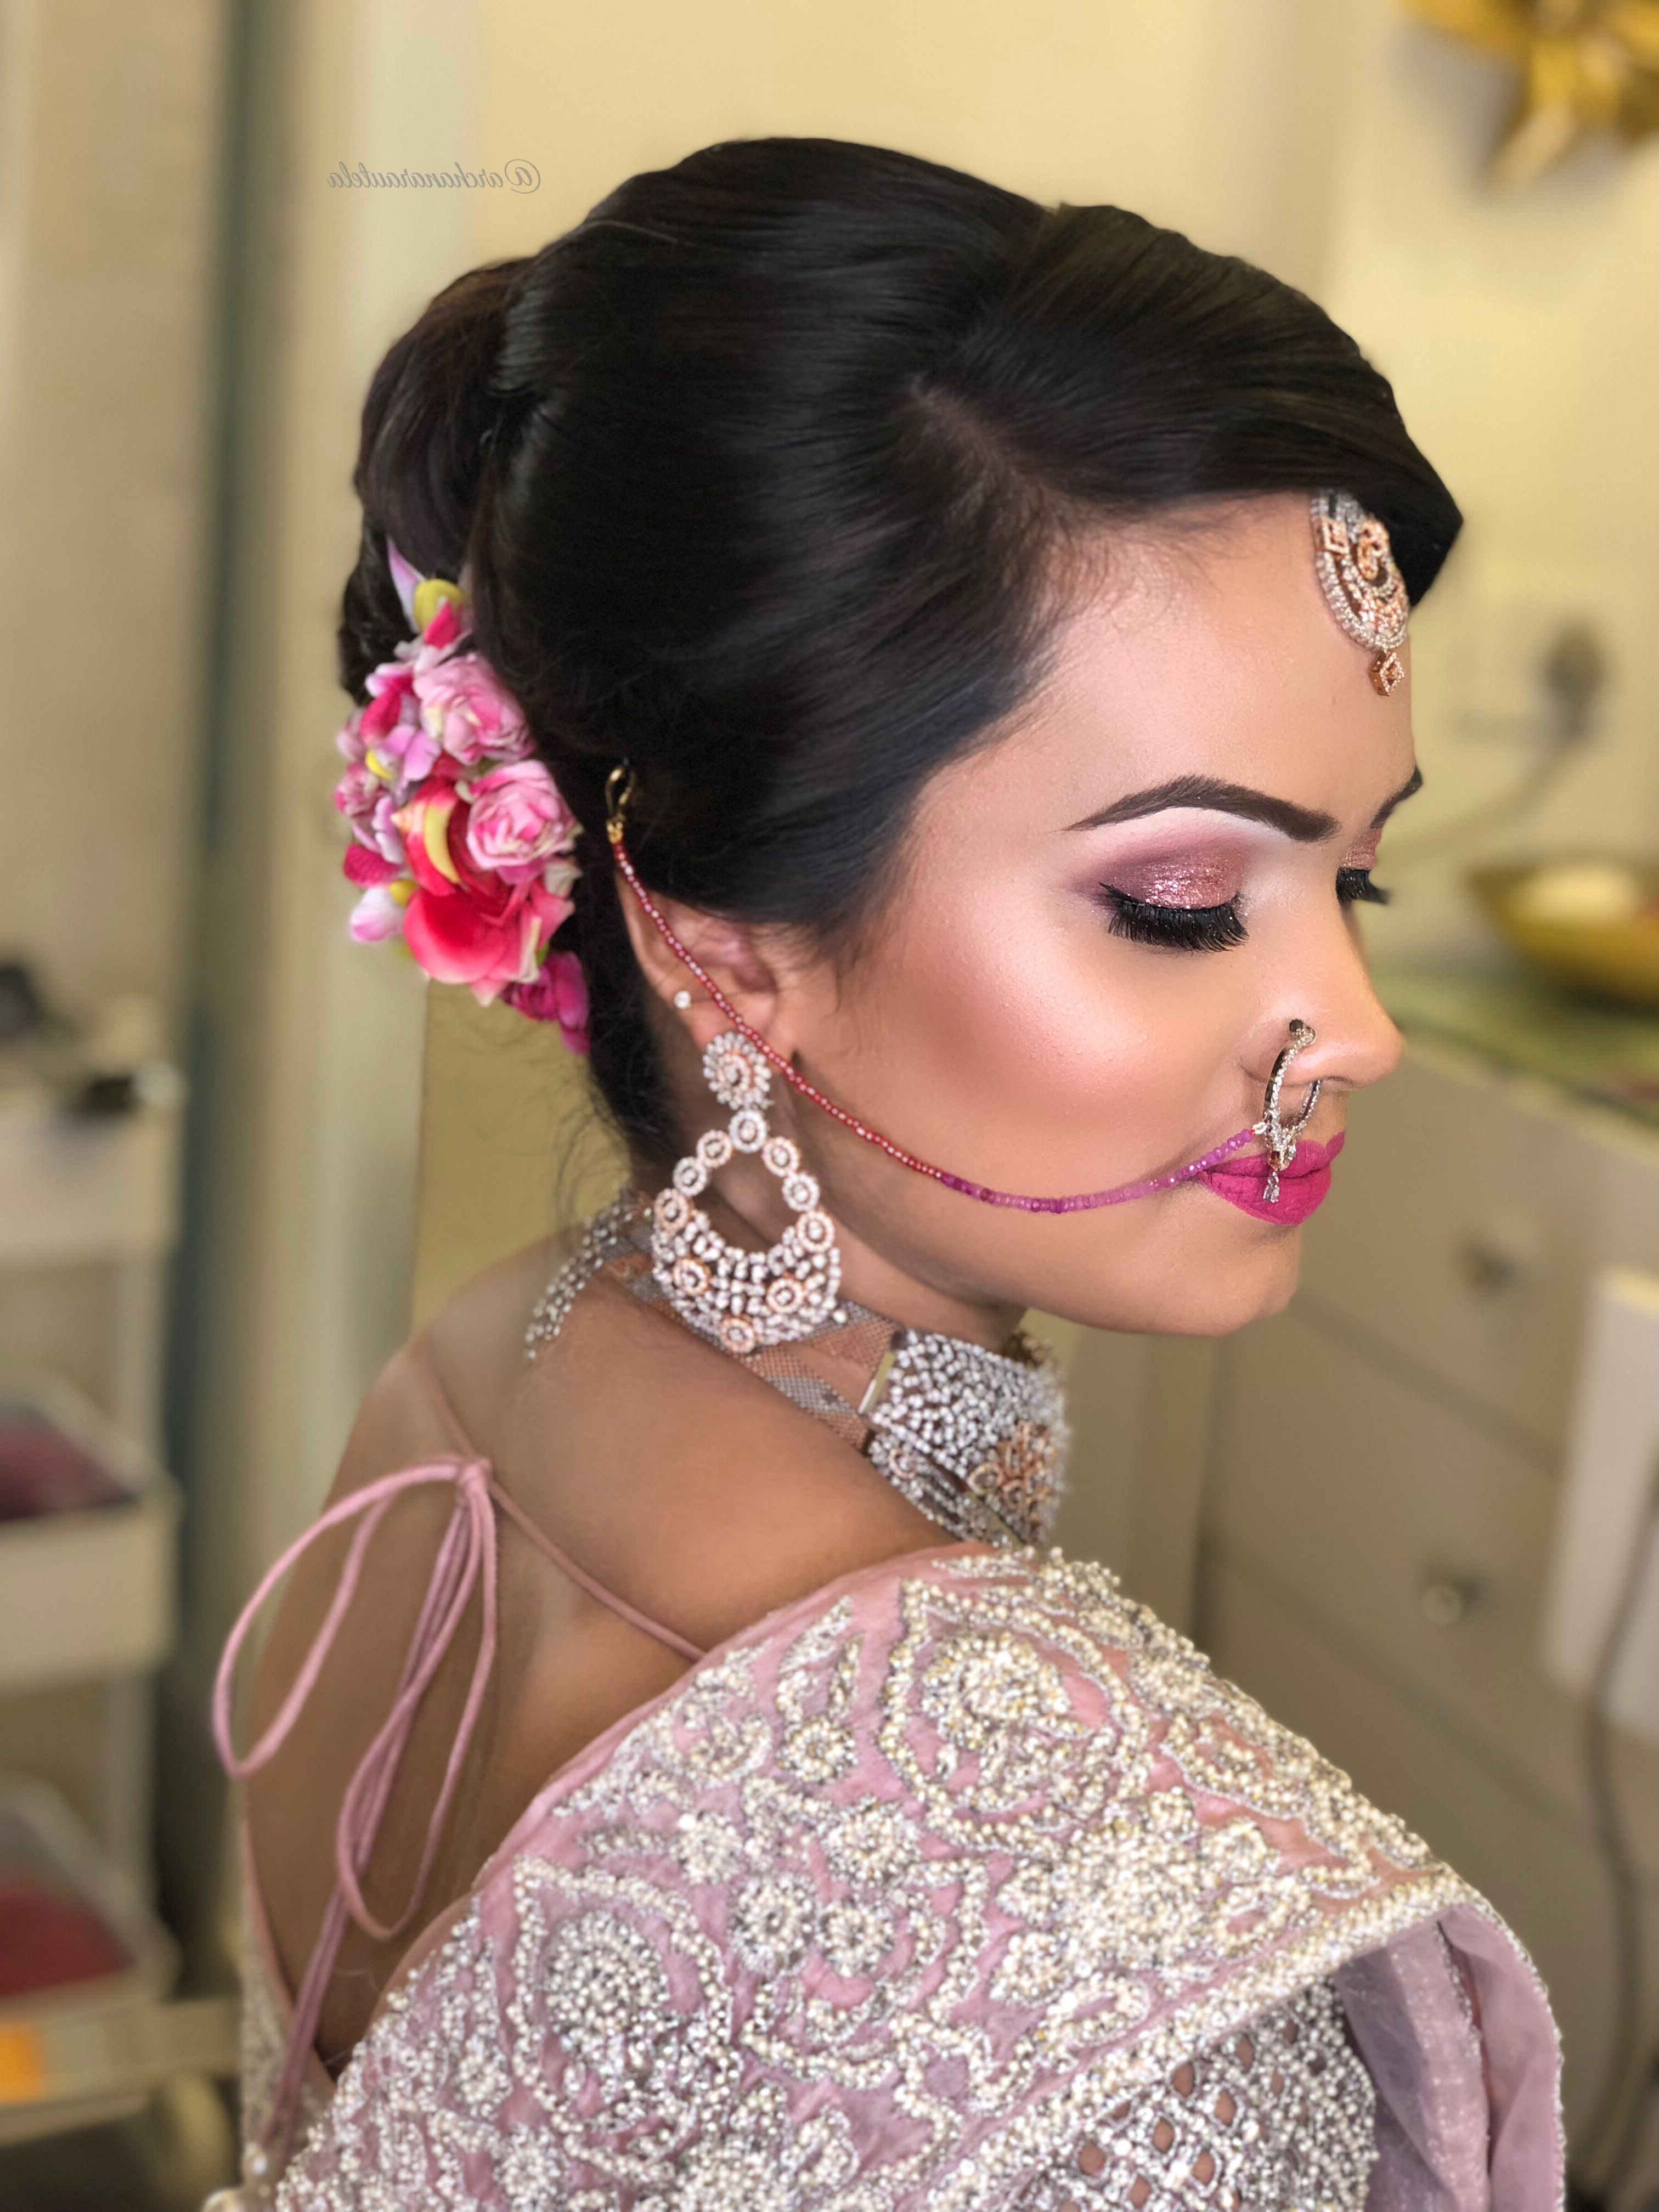 Widely Used Sides Parted Wedding Hairstyles For The Neat Flow And The ✨✨Highlight On Fleek 💓👰🏼💓#bridetobe Pink (View 19 of 20)